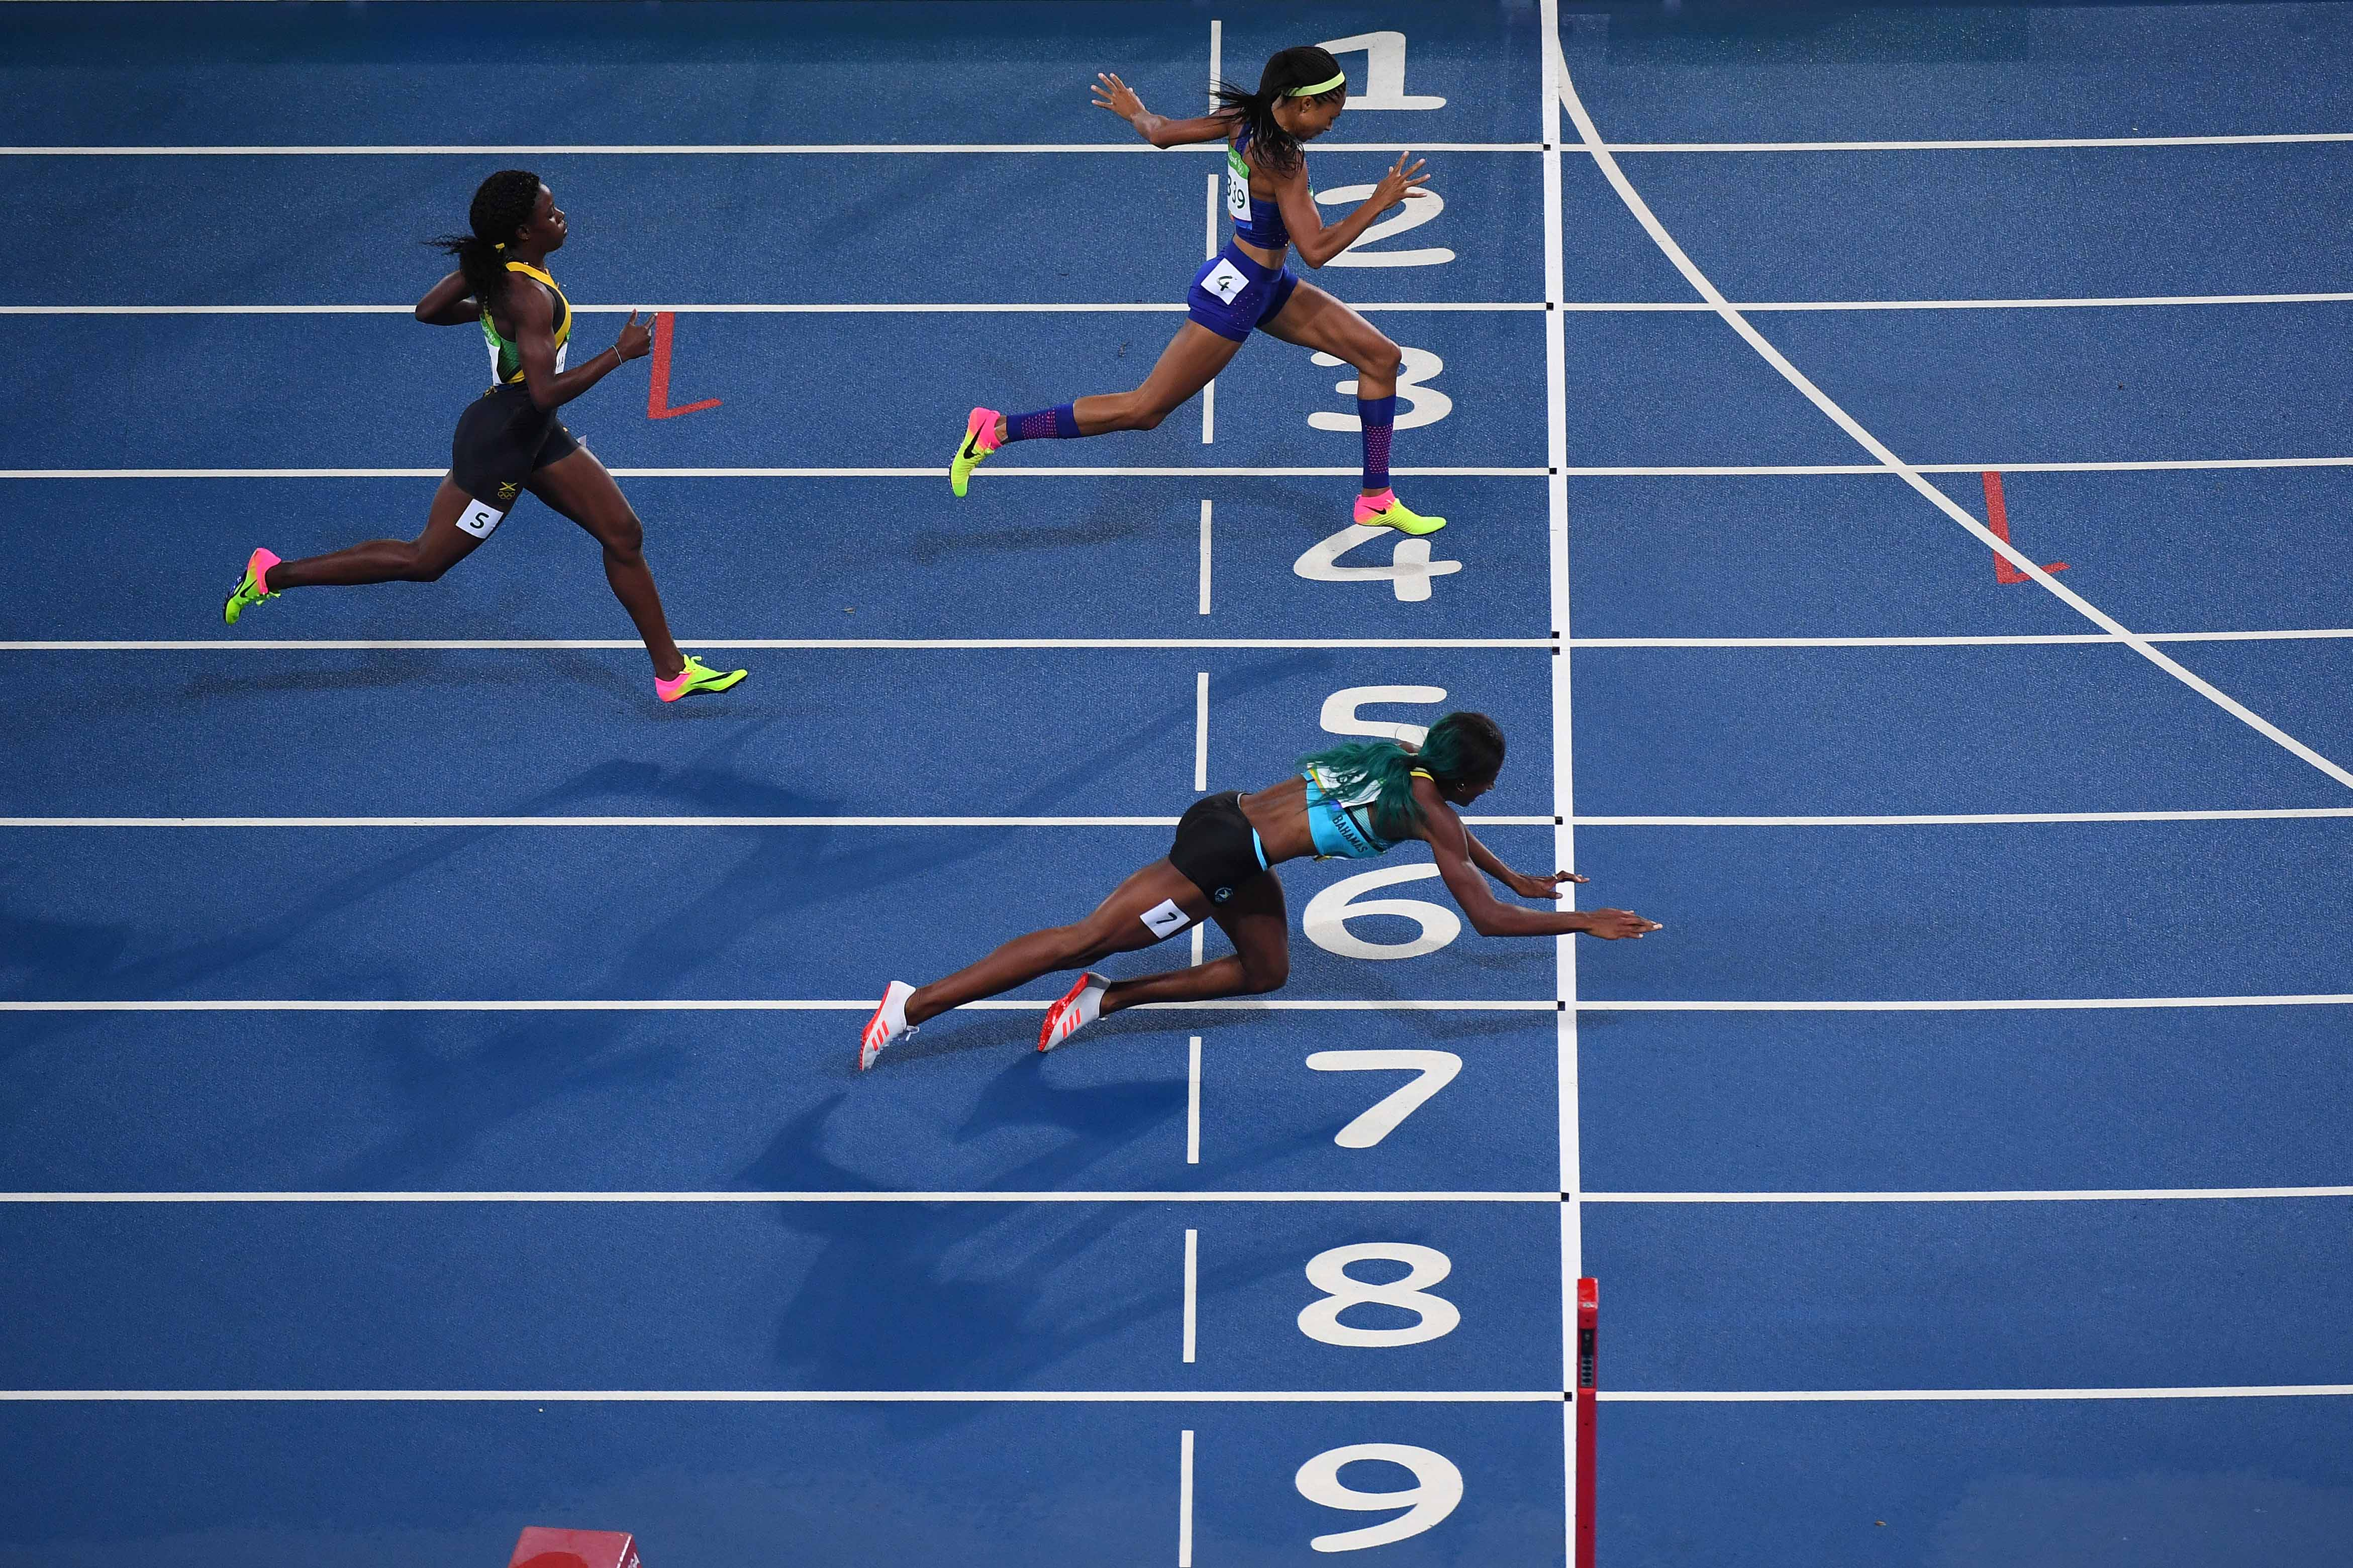 In Line Finishing : Frame by look at shaunae miller s dive that won the